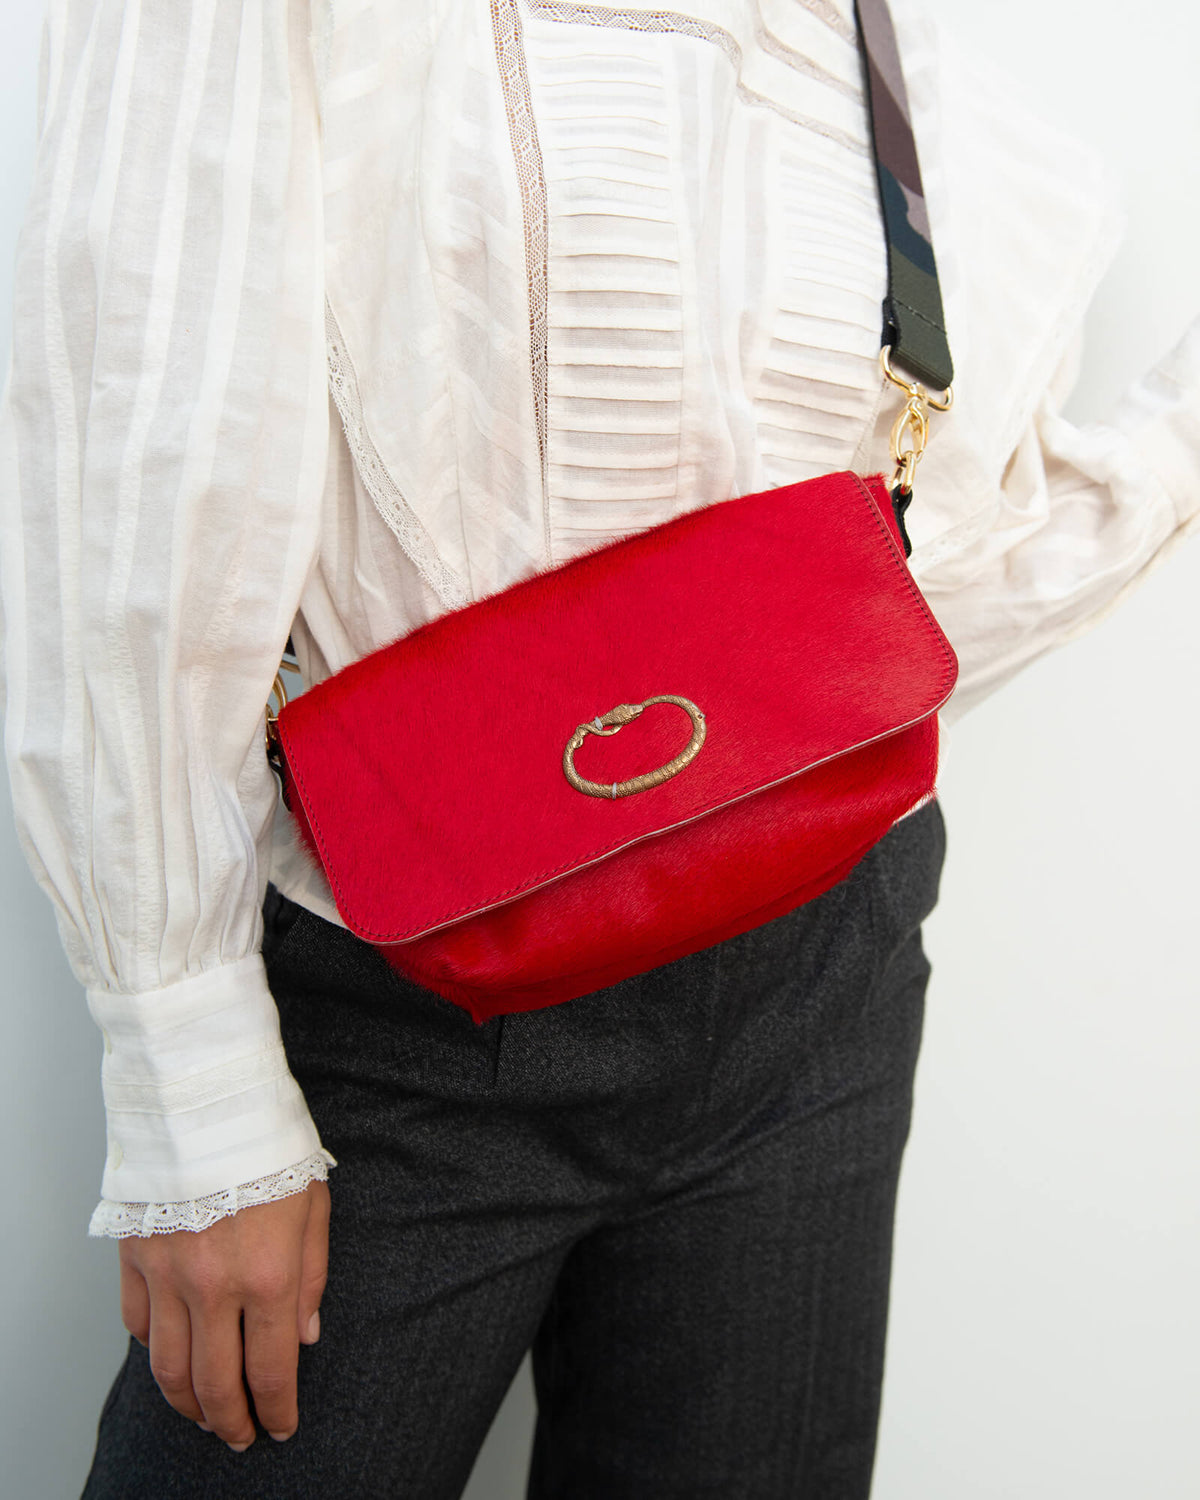 SLP Mai Tai bag in red and gold